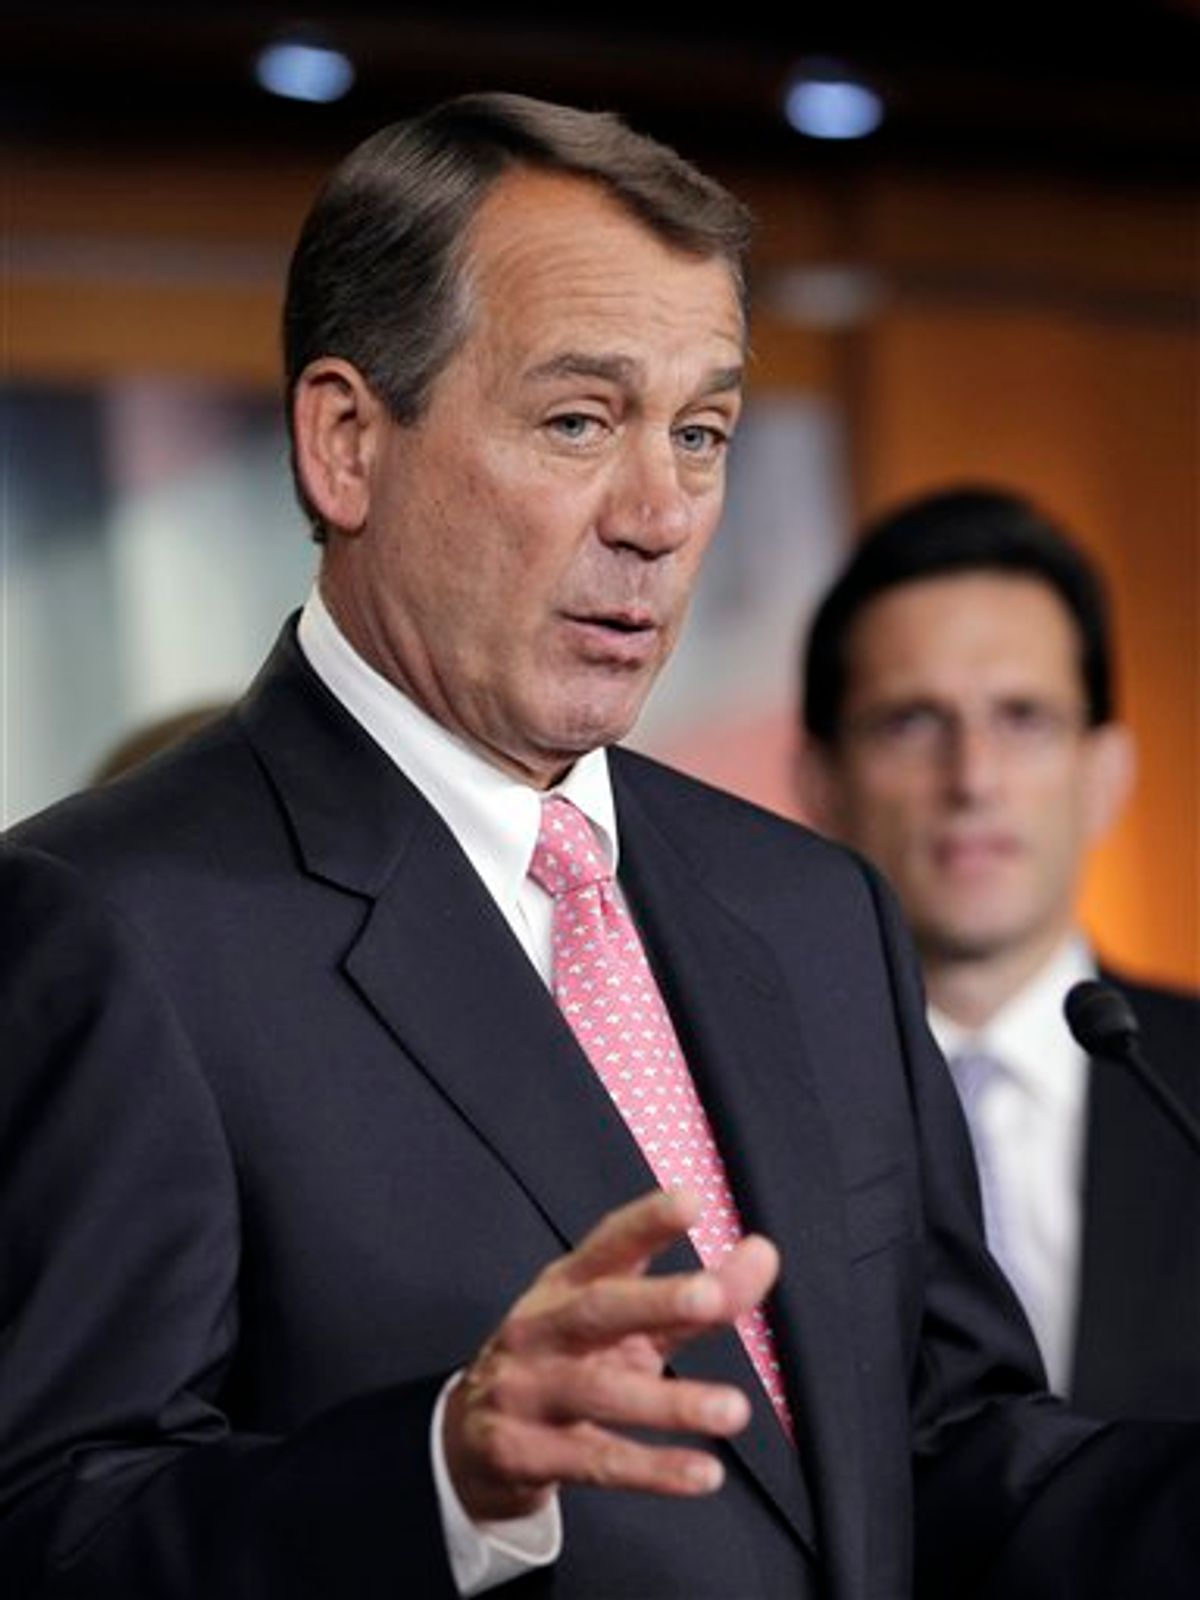 House Speaker John Boehner of Ohio speaks to reporters on Capitol Hill in Washington, Thursday, June 16, 2011. Boehner reasserted that the scandal surrounding Rep. Anthony Weiner, D-NY, had become a distraction from the important work in Congress. House Majority Leader Eric Cantor of Virginia is at right. (AP Photo/J. Scott Applewhite) (AP)